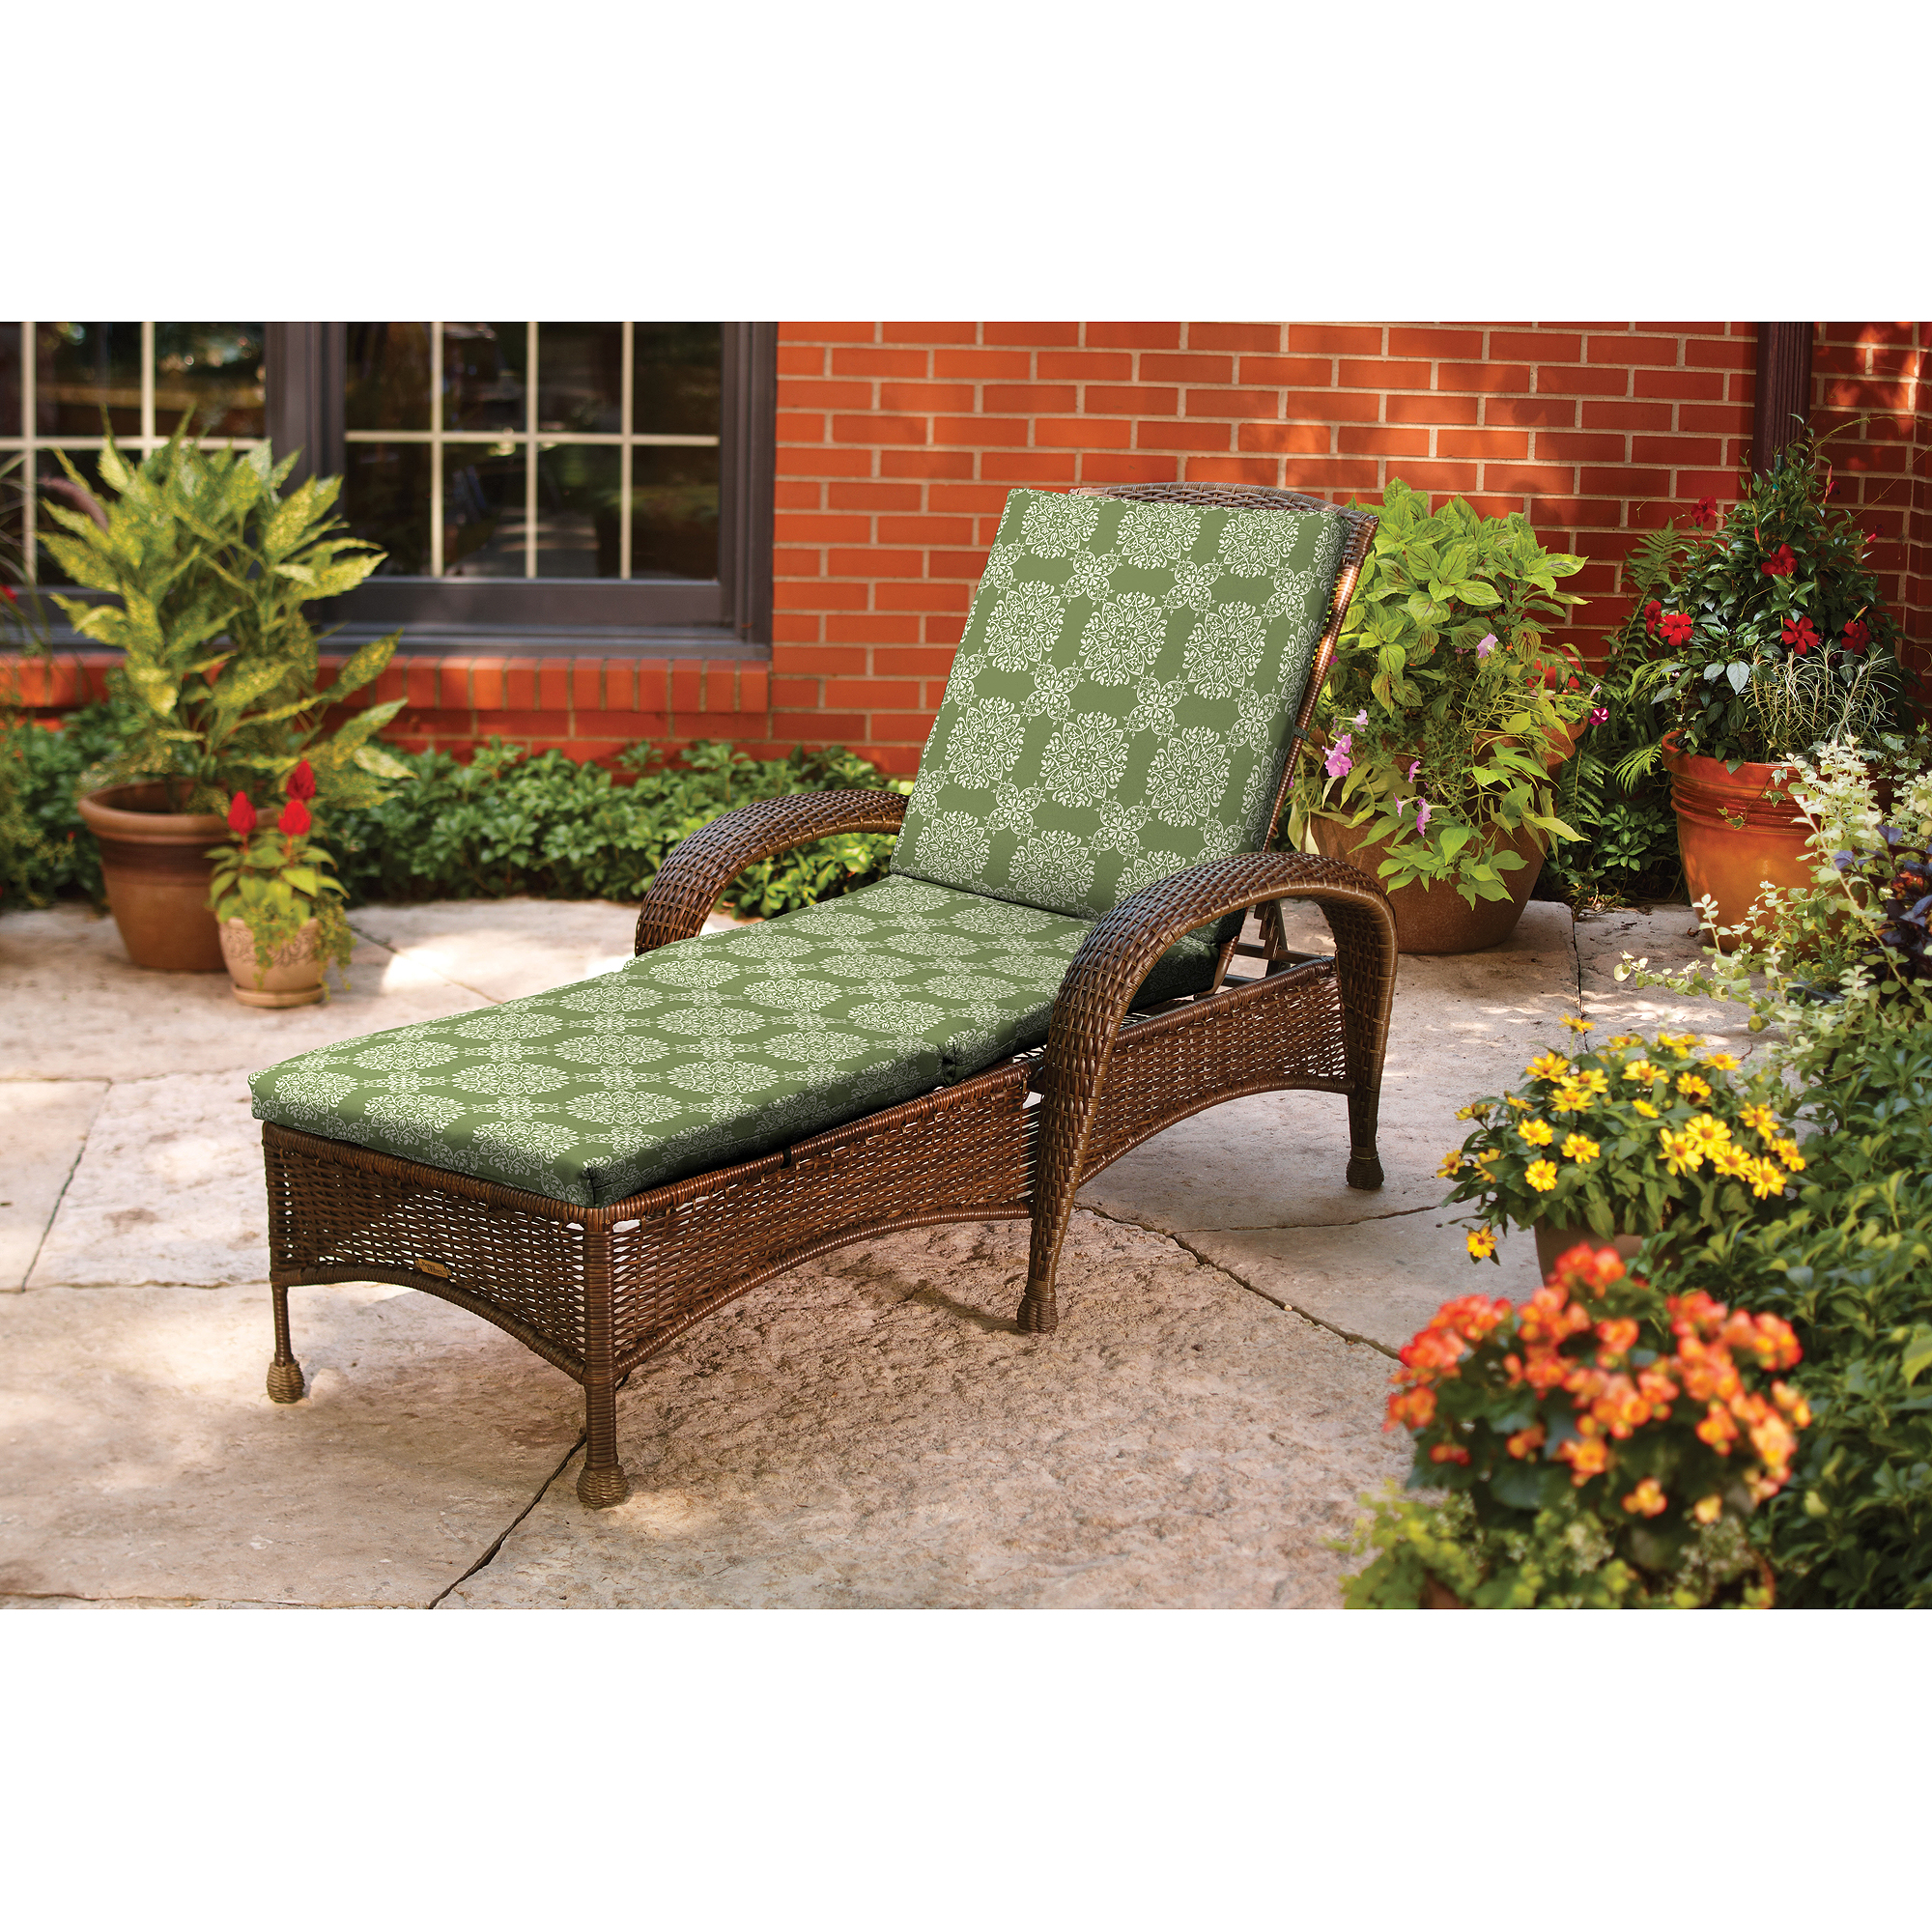 Better Homes And Gardens Chaise Cushion, Green Tulip Medallion   Walmart.com